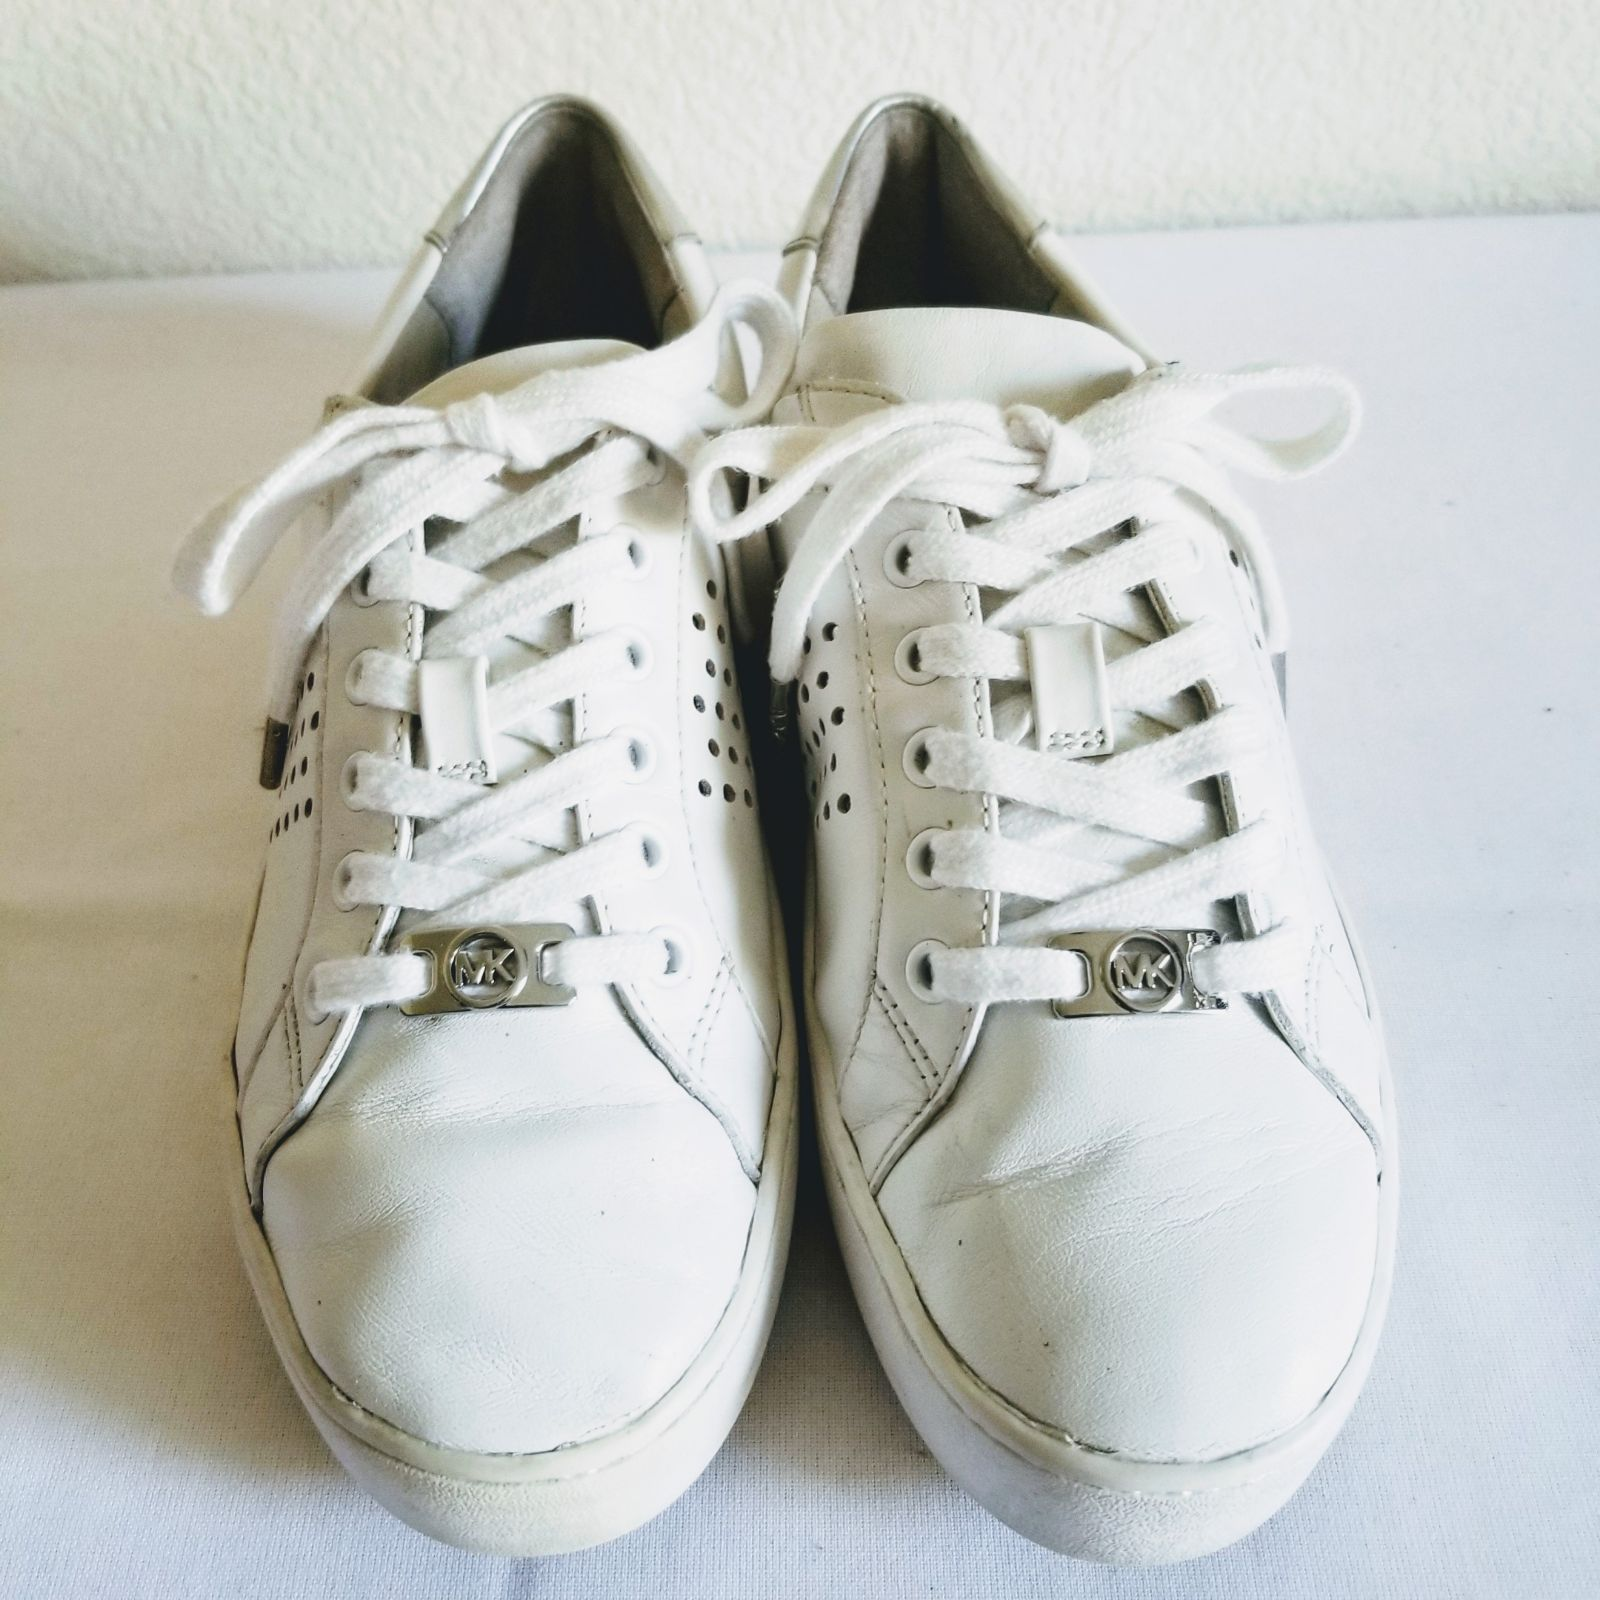 Michael Kors Irving Leather Sneakers 7.5